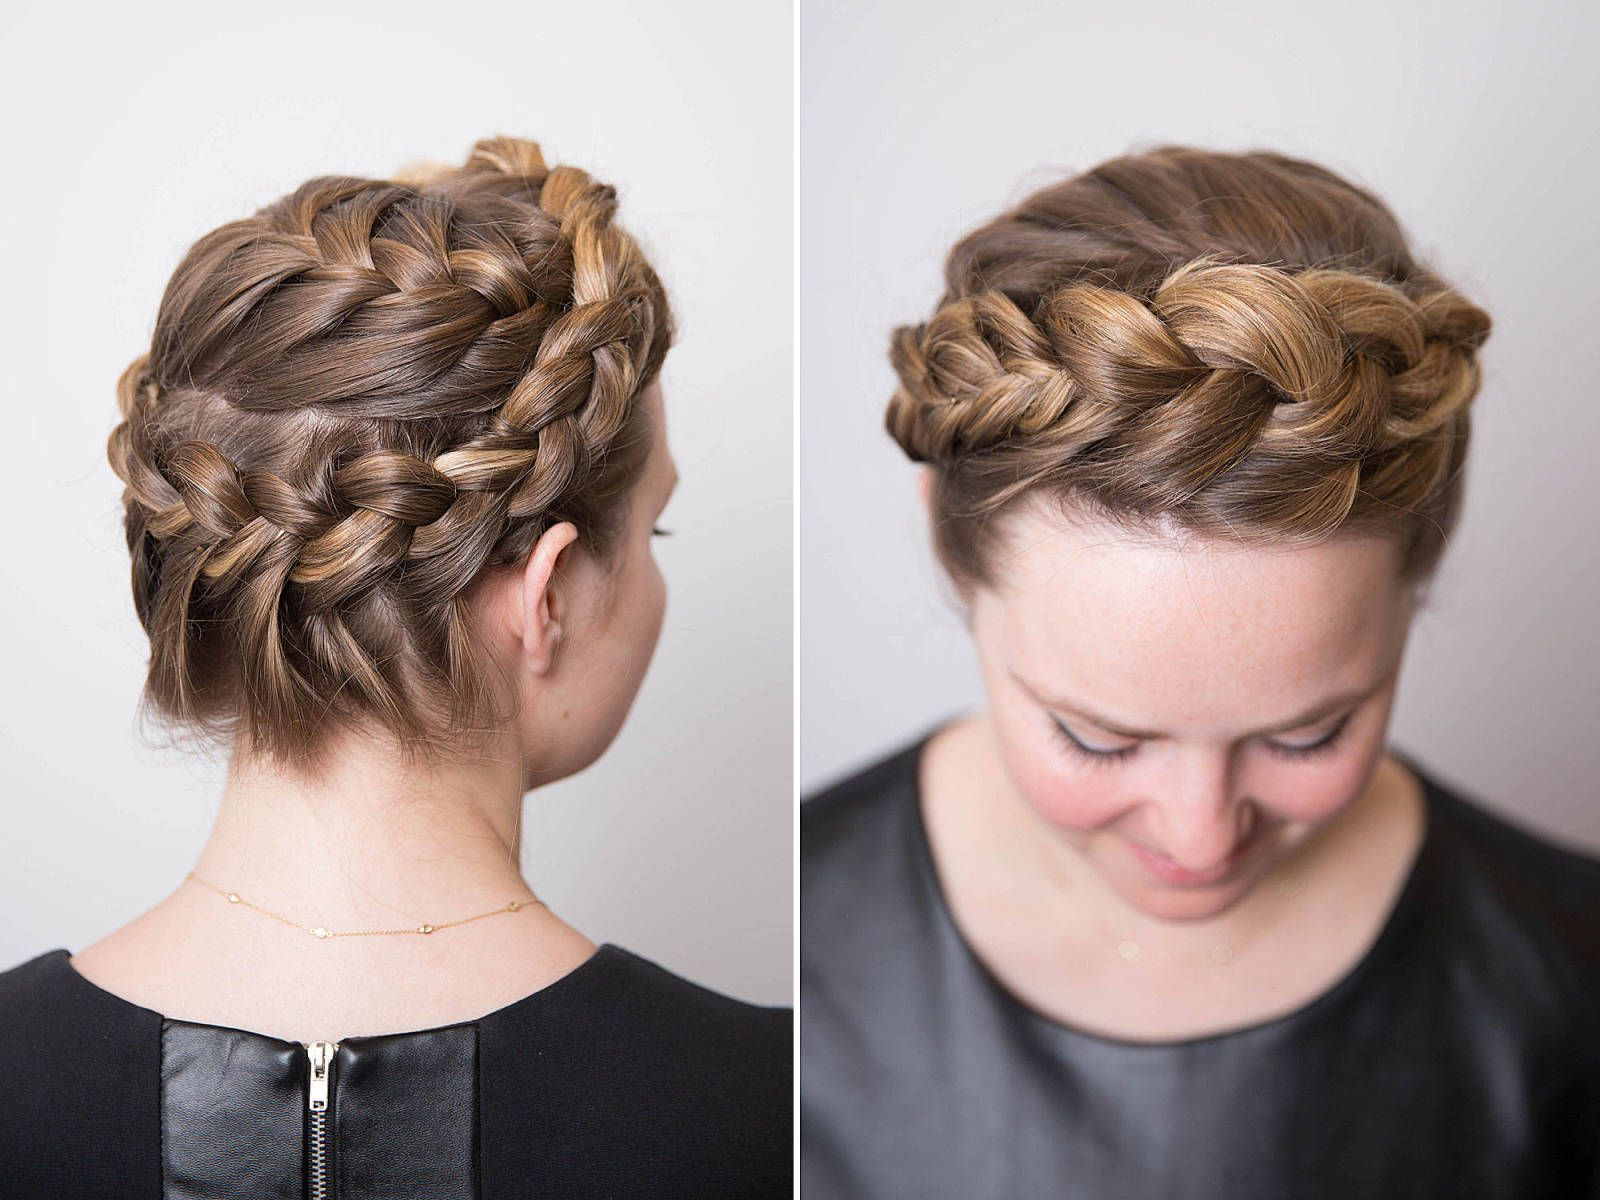 Diy braided hairstyles we love spirals beauty and of